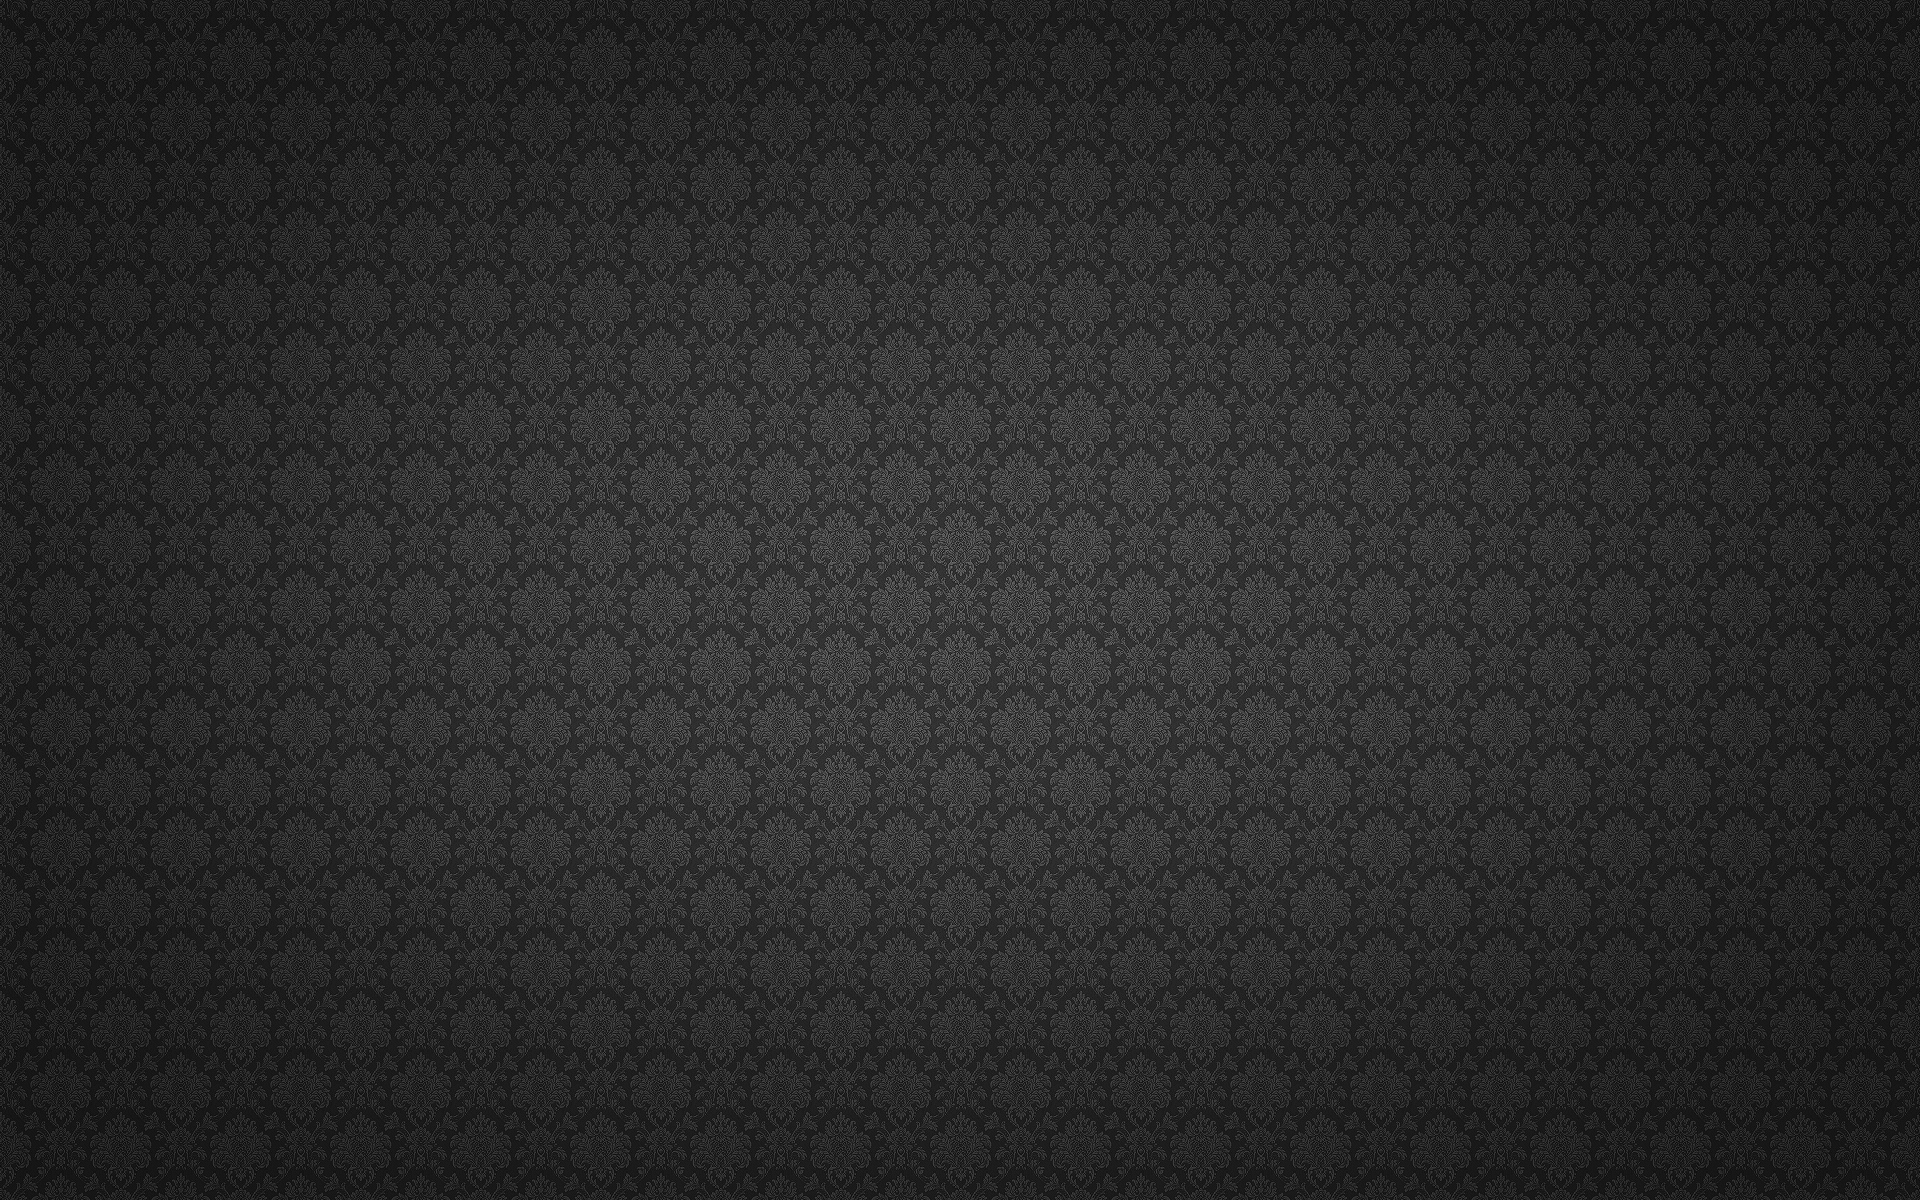 Black Wallpaper 22 1920x1200